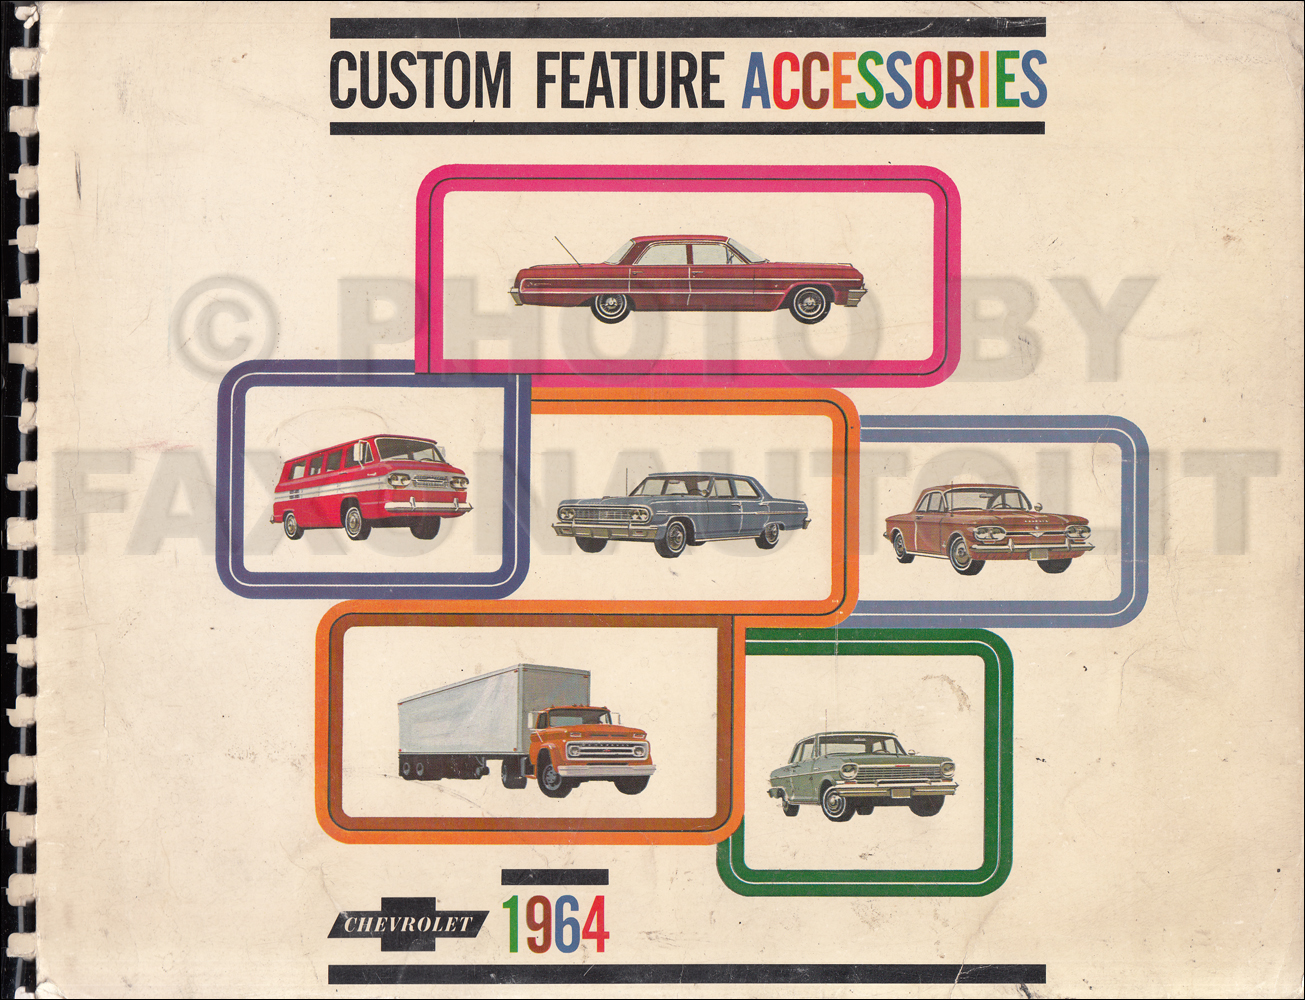 1964 Chevrolet Custom Feature Accessories Dealer Album Original